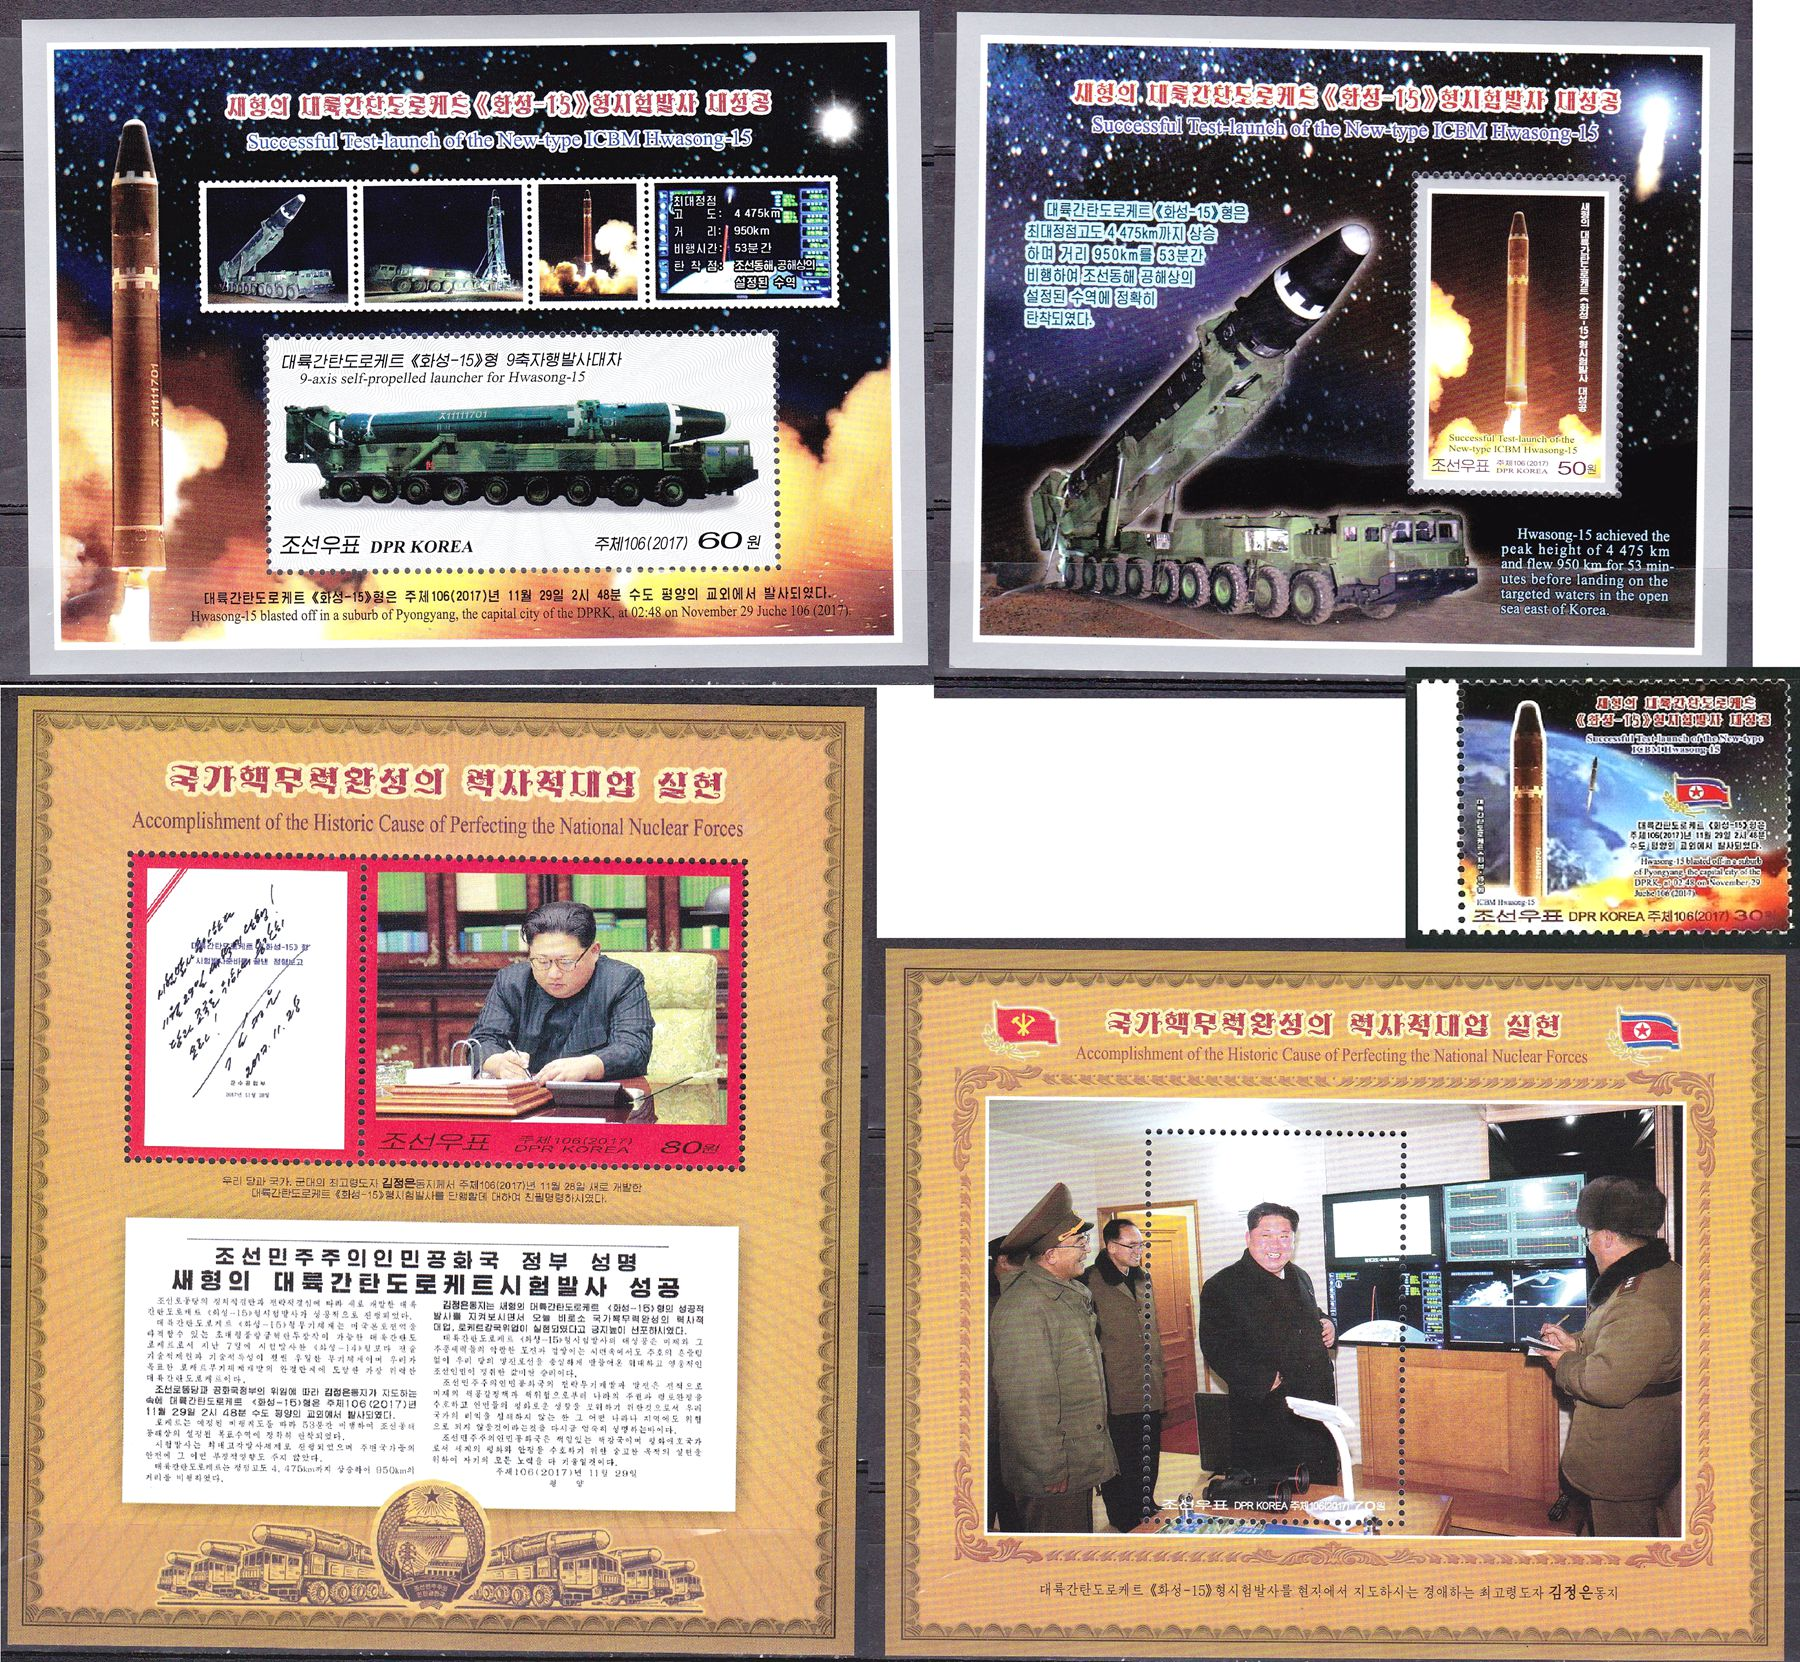 L4408, New: Korea Hwasong-15 Intercontinental Ballistic Missile, 1 Stamp 4 MS, 2017-11-29